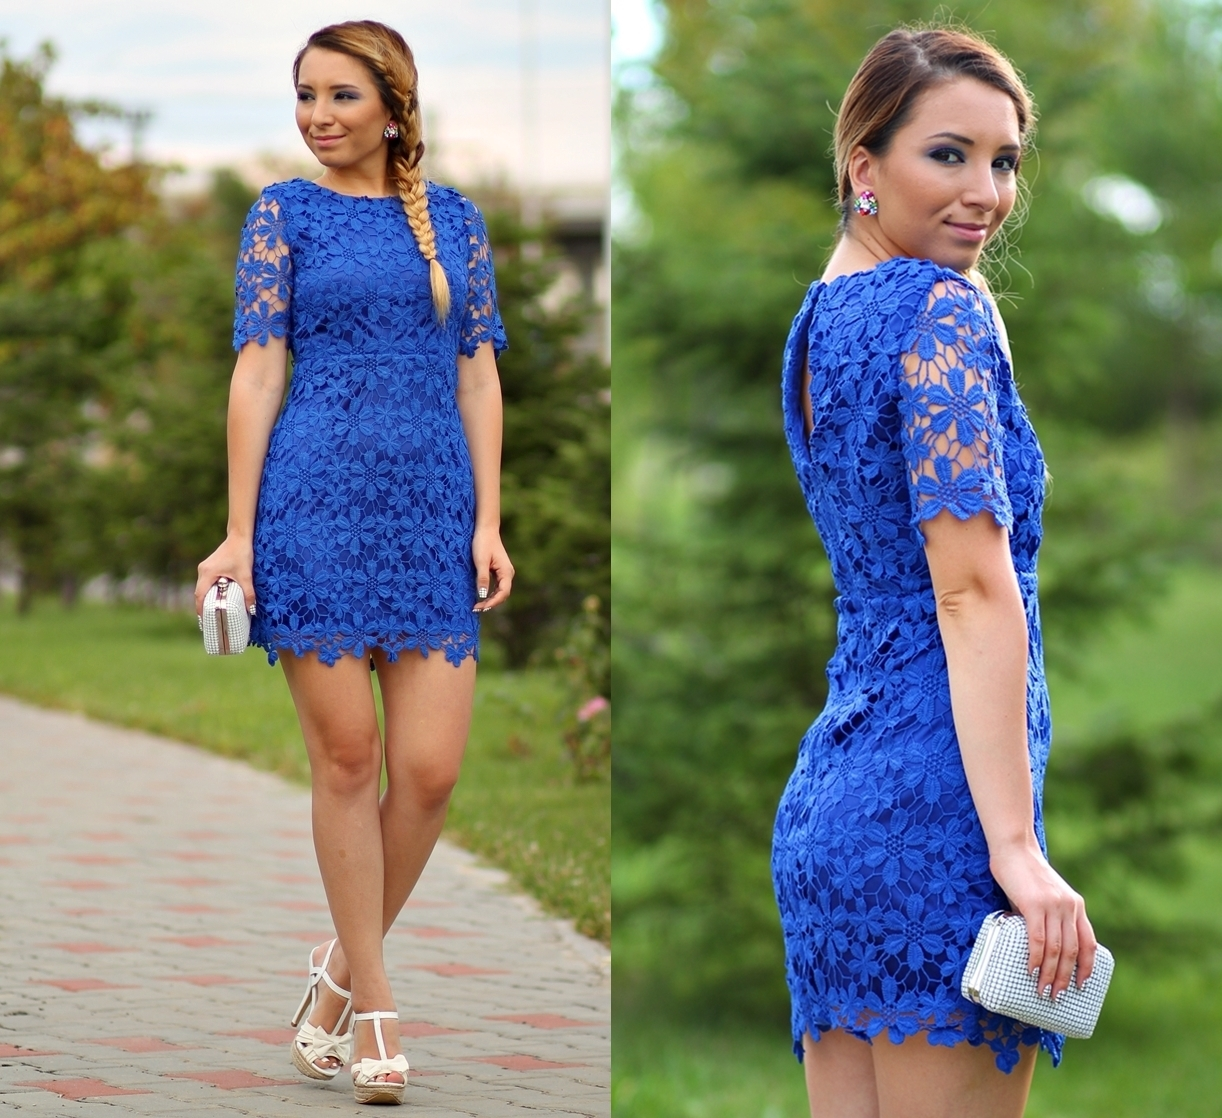 Street style - blue lace dress - short dress - flowers lace, white sandals and white clutch - elegant look